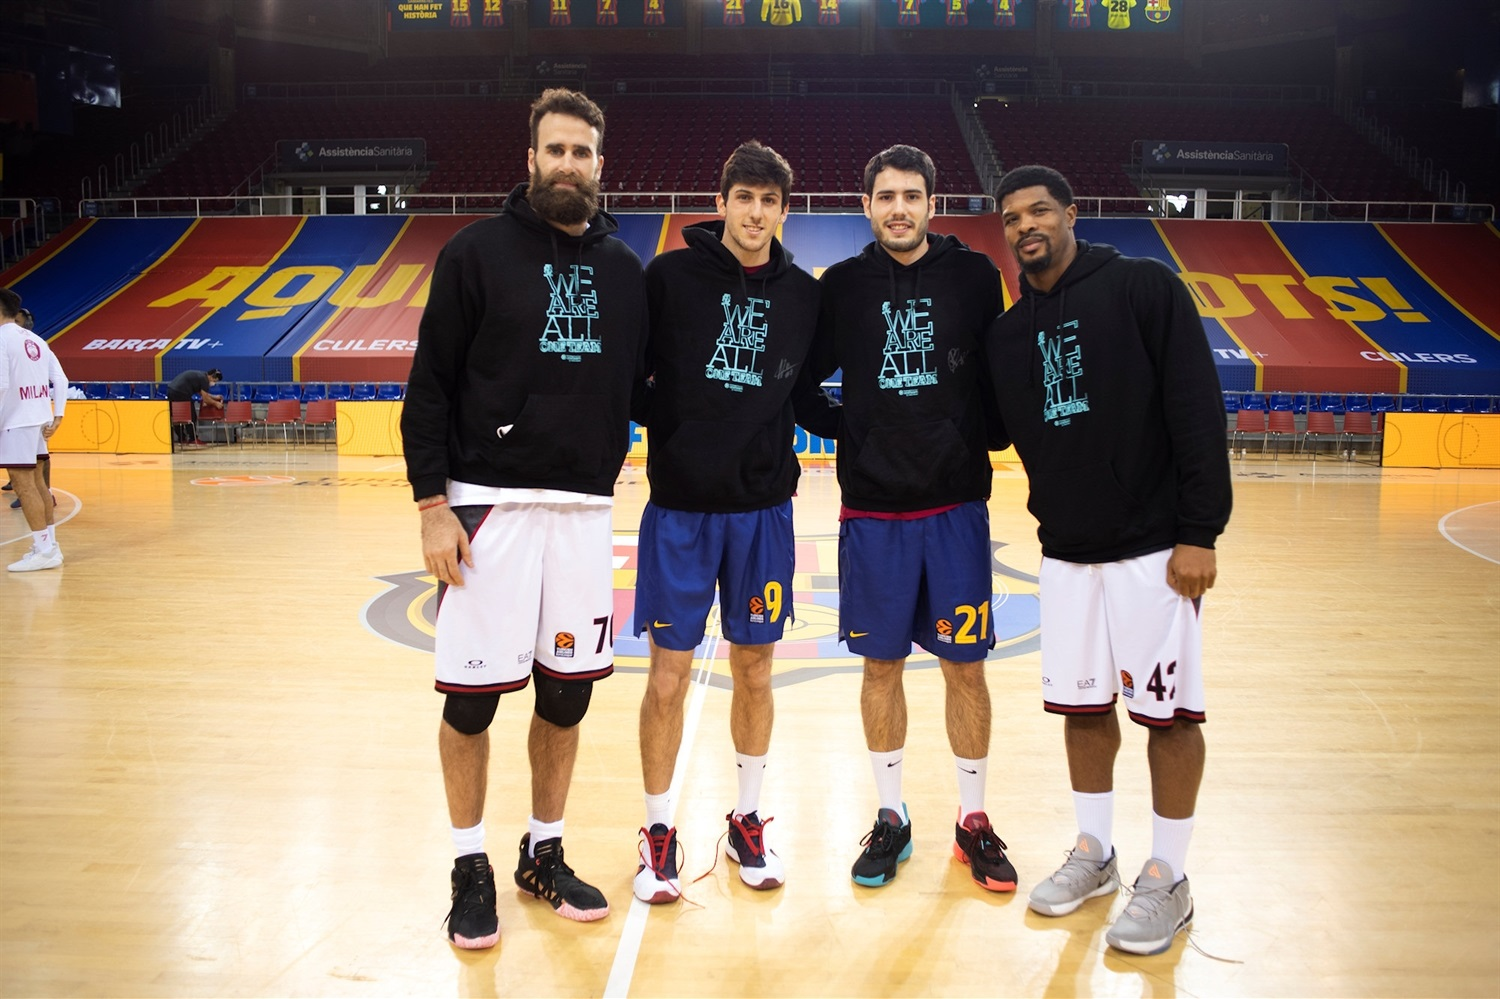 Datome, Bolmaro, Abrines and Hines, We Are All One Team - FC Barcelona vs. CSKA Moscow - EB20